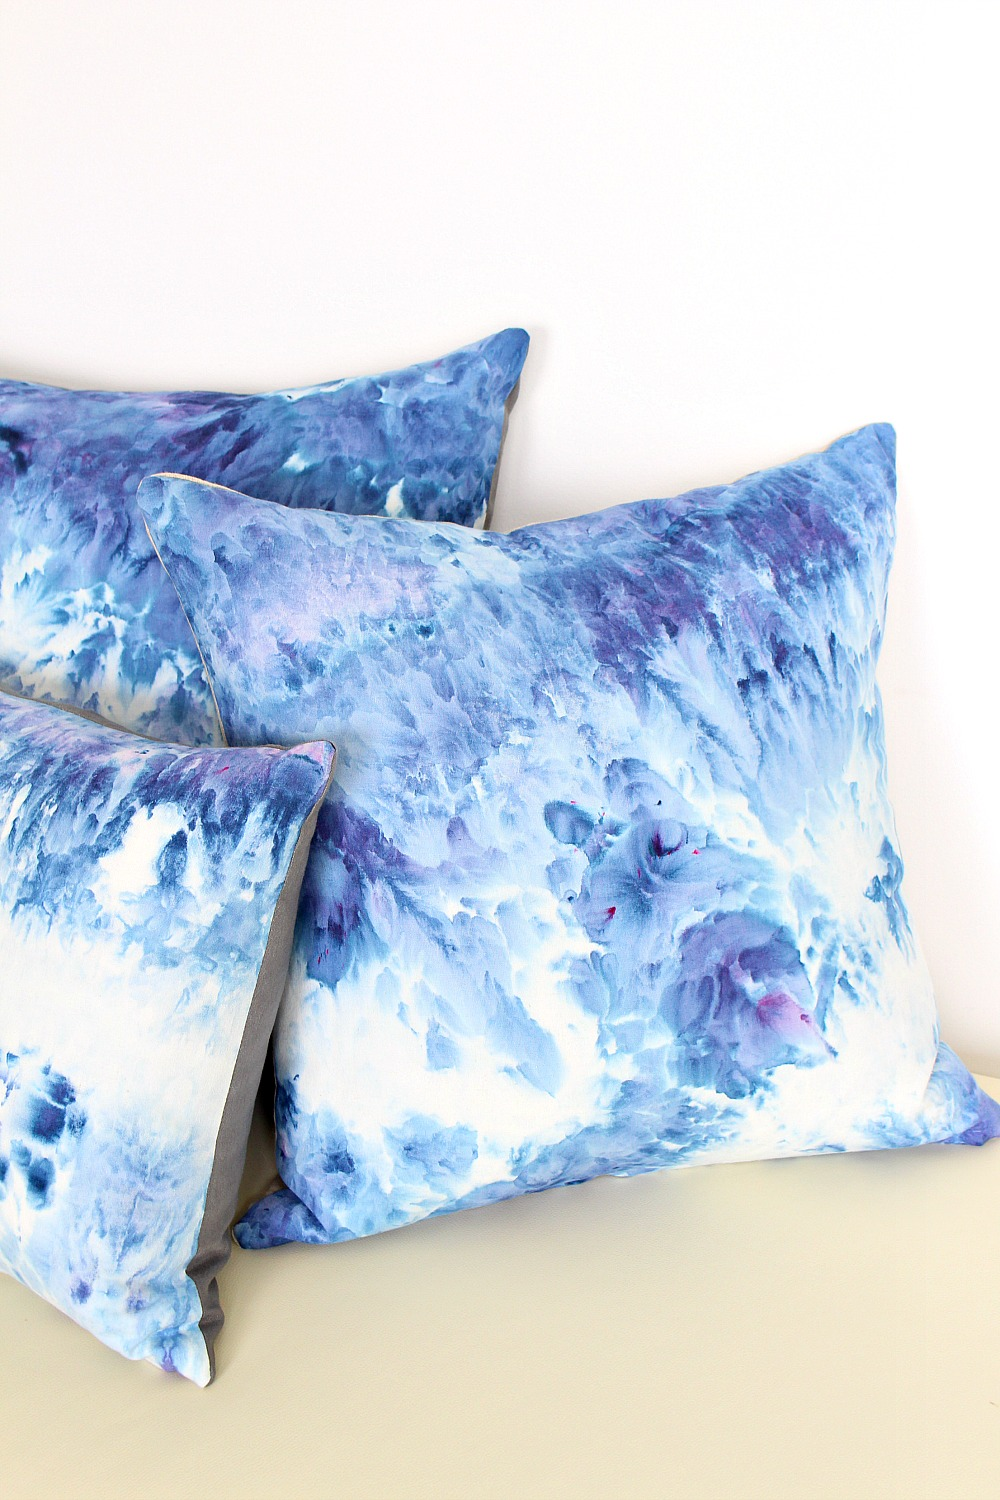 Diy Ice Dye Pillows How To Ice Dye Dans Le Lakehouse